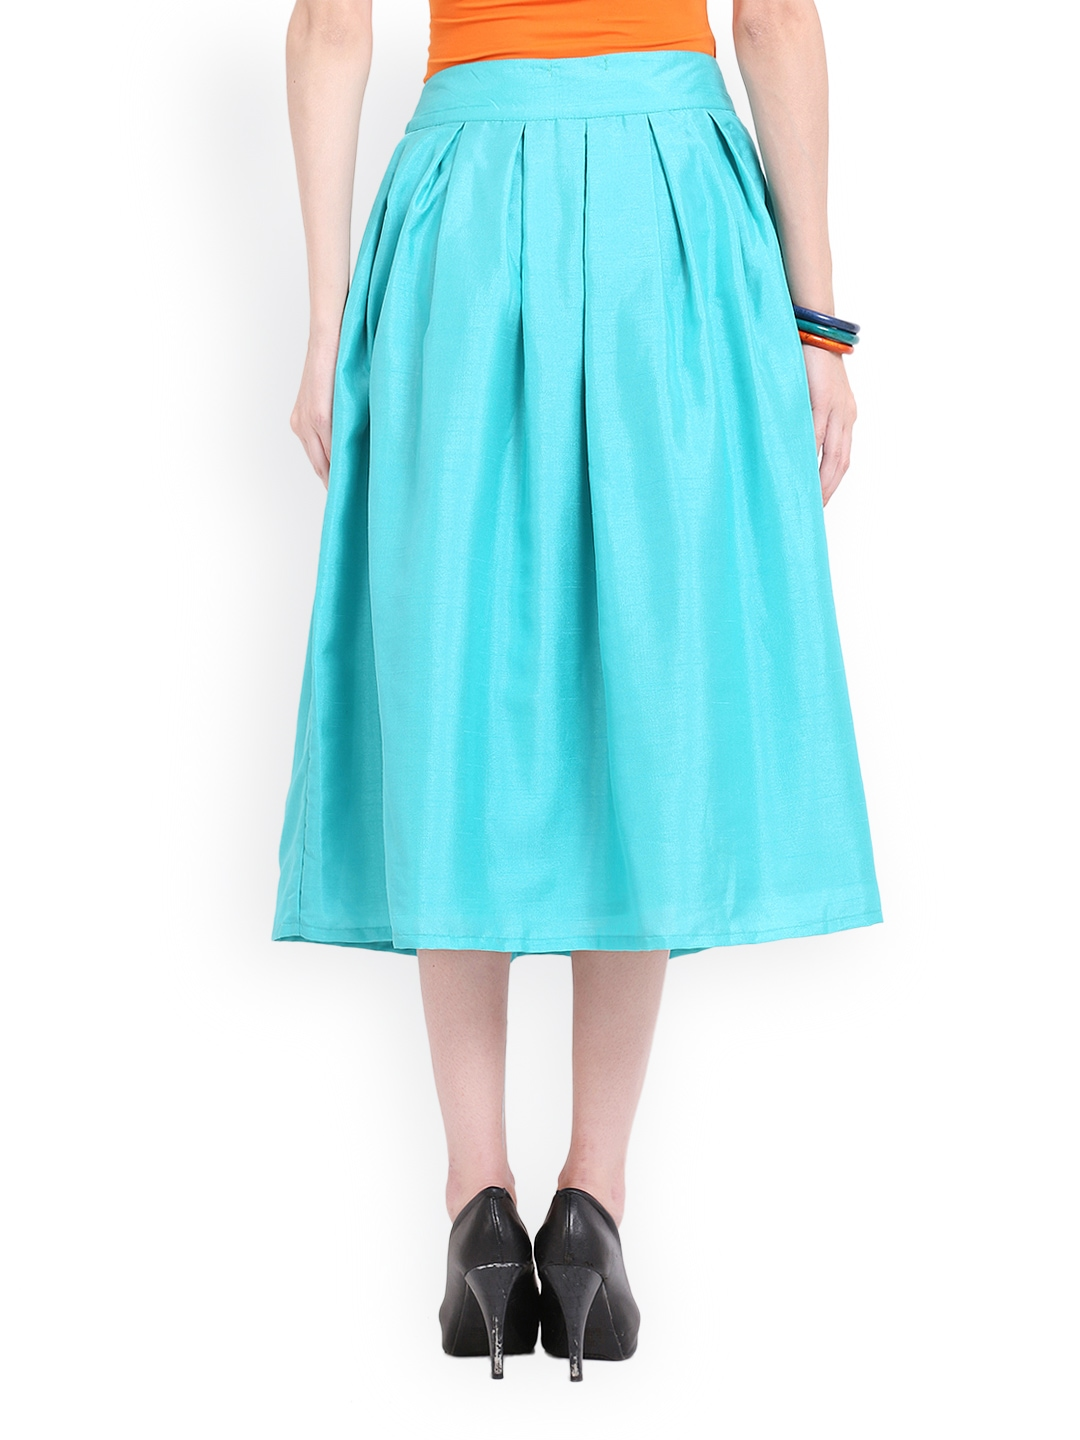 myntra ridress for tfc turquoise blue midi skirt 584650